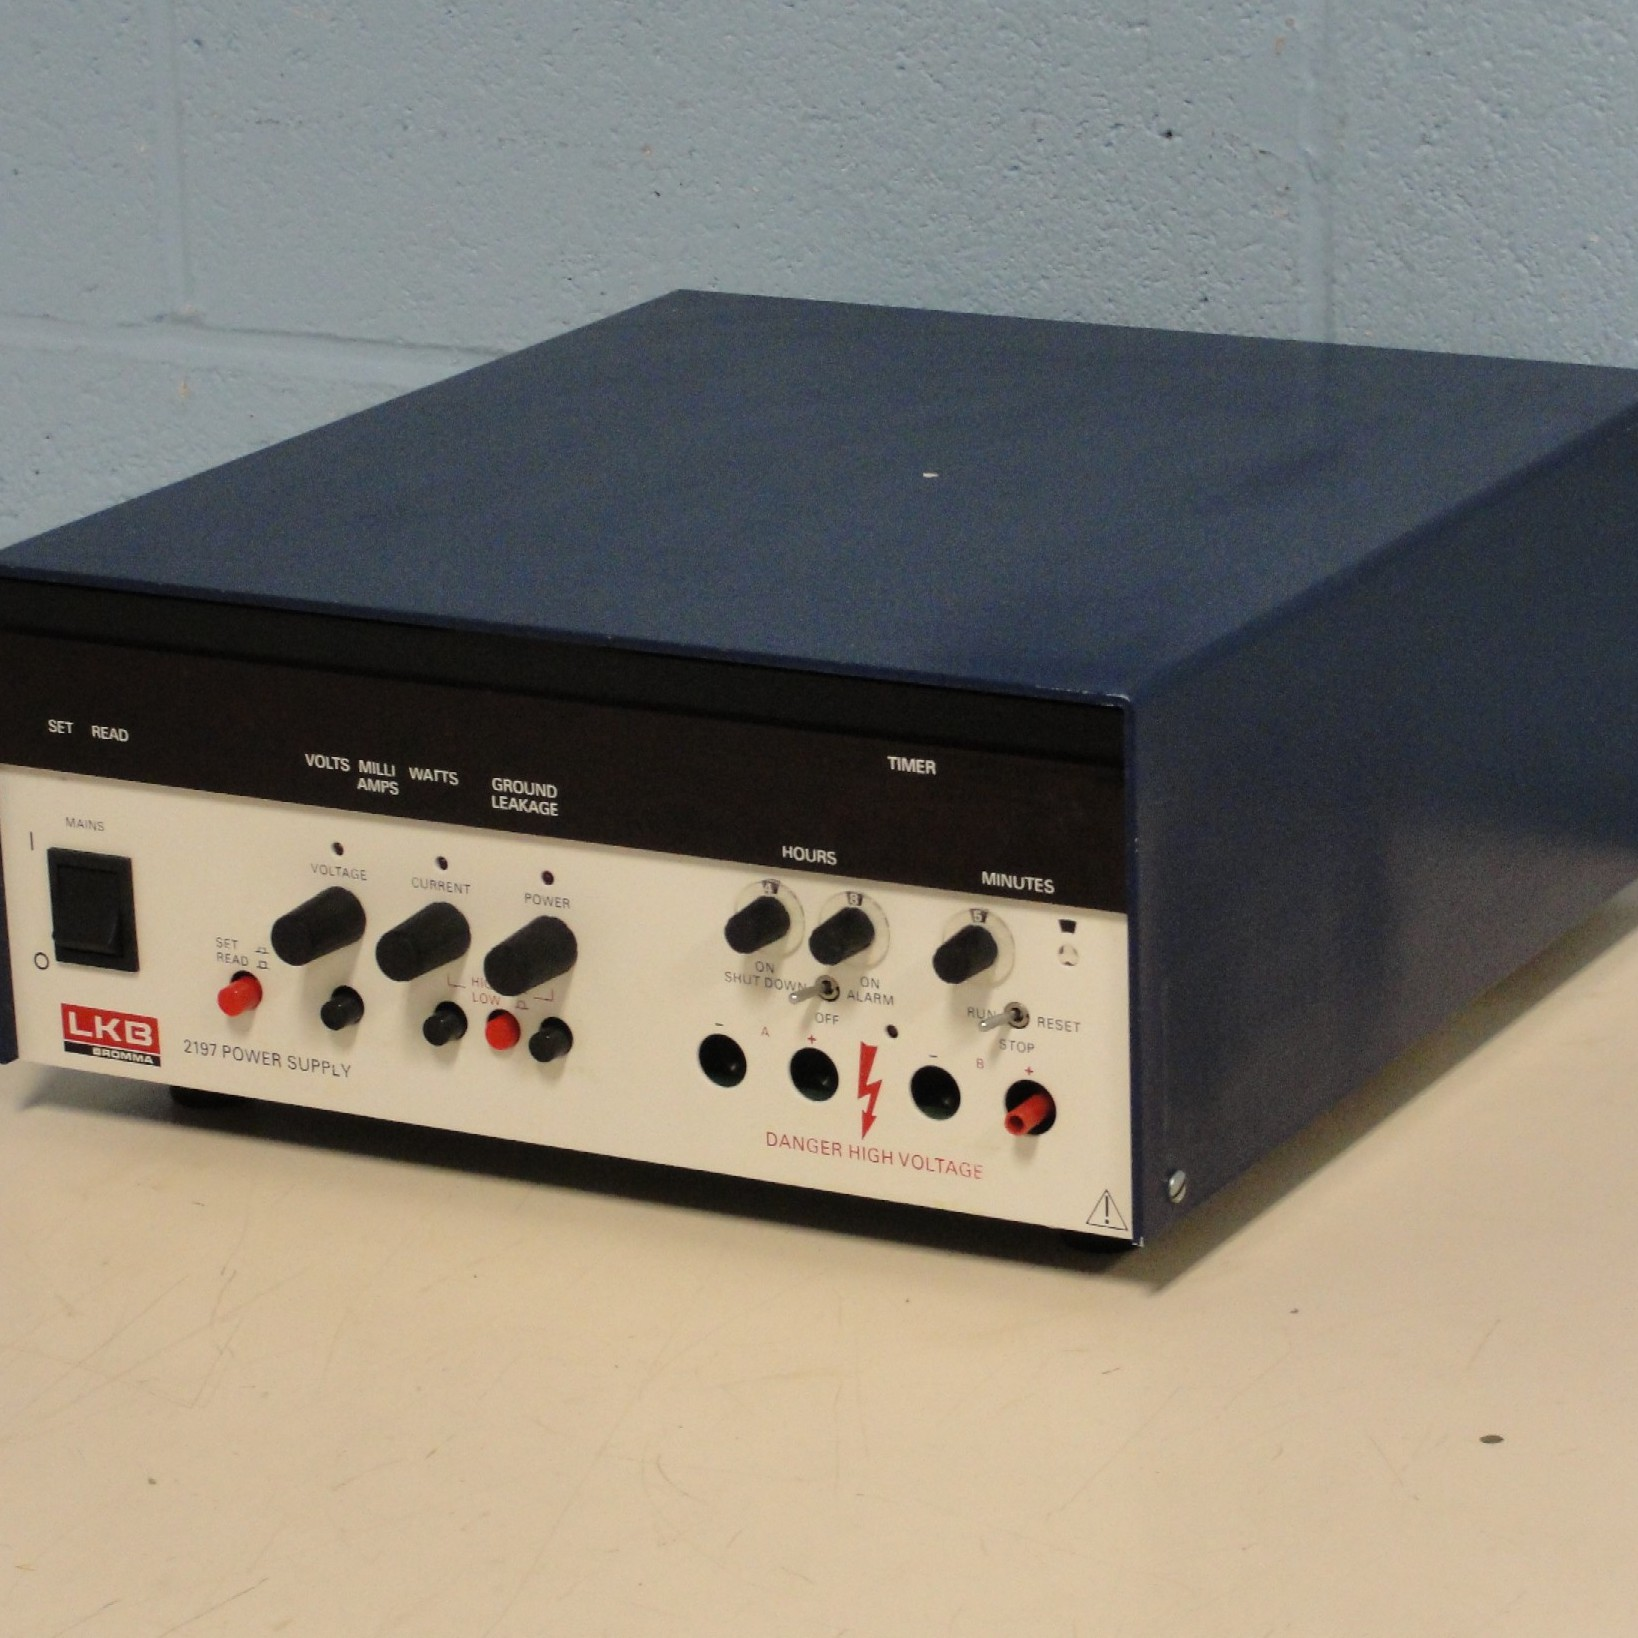 LKB Bromma 2197 Power Supply Image